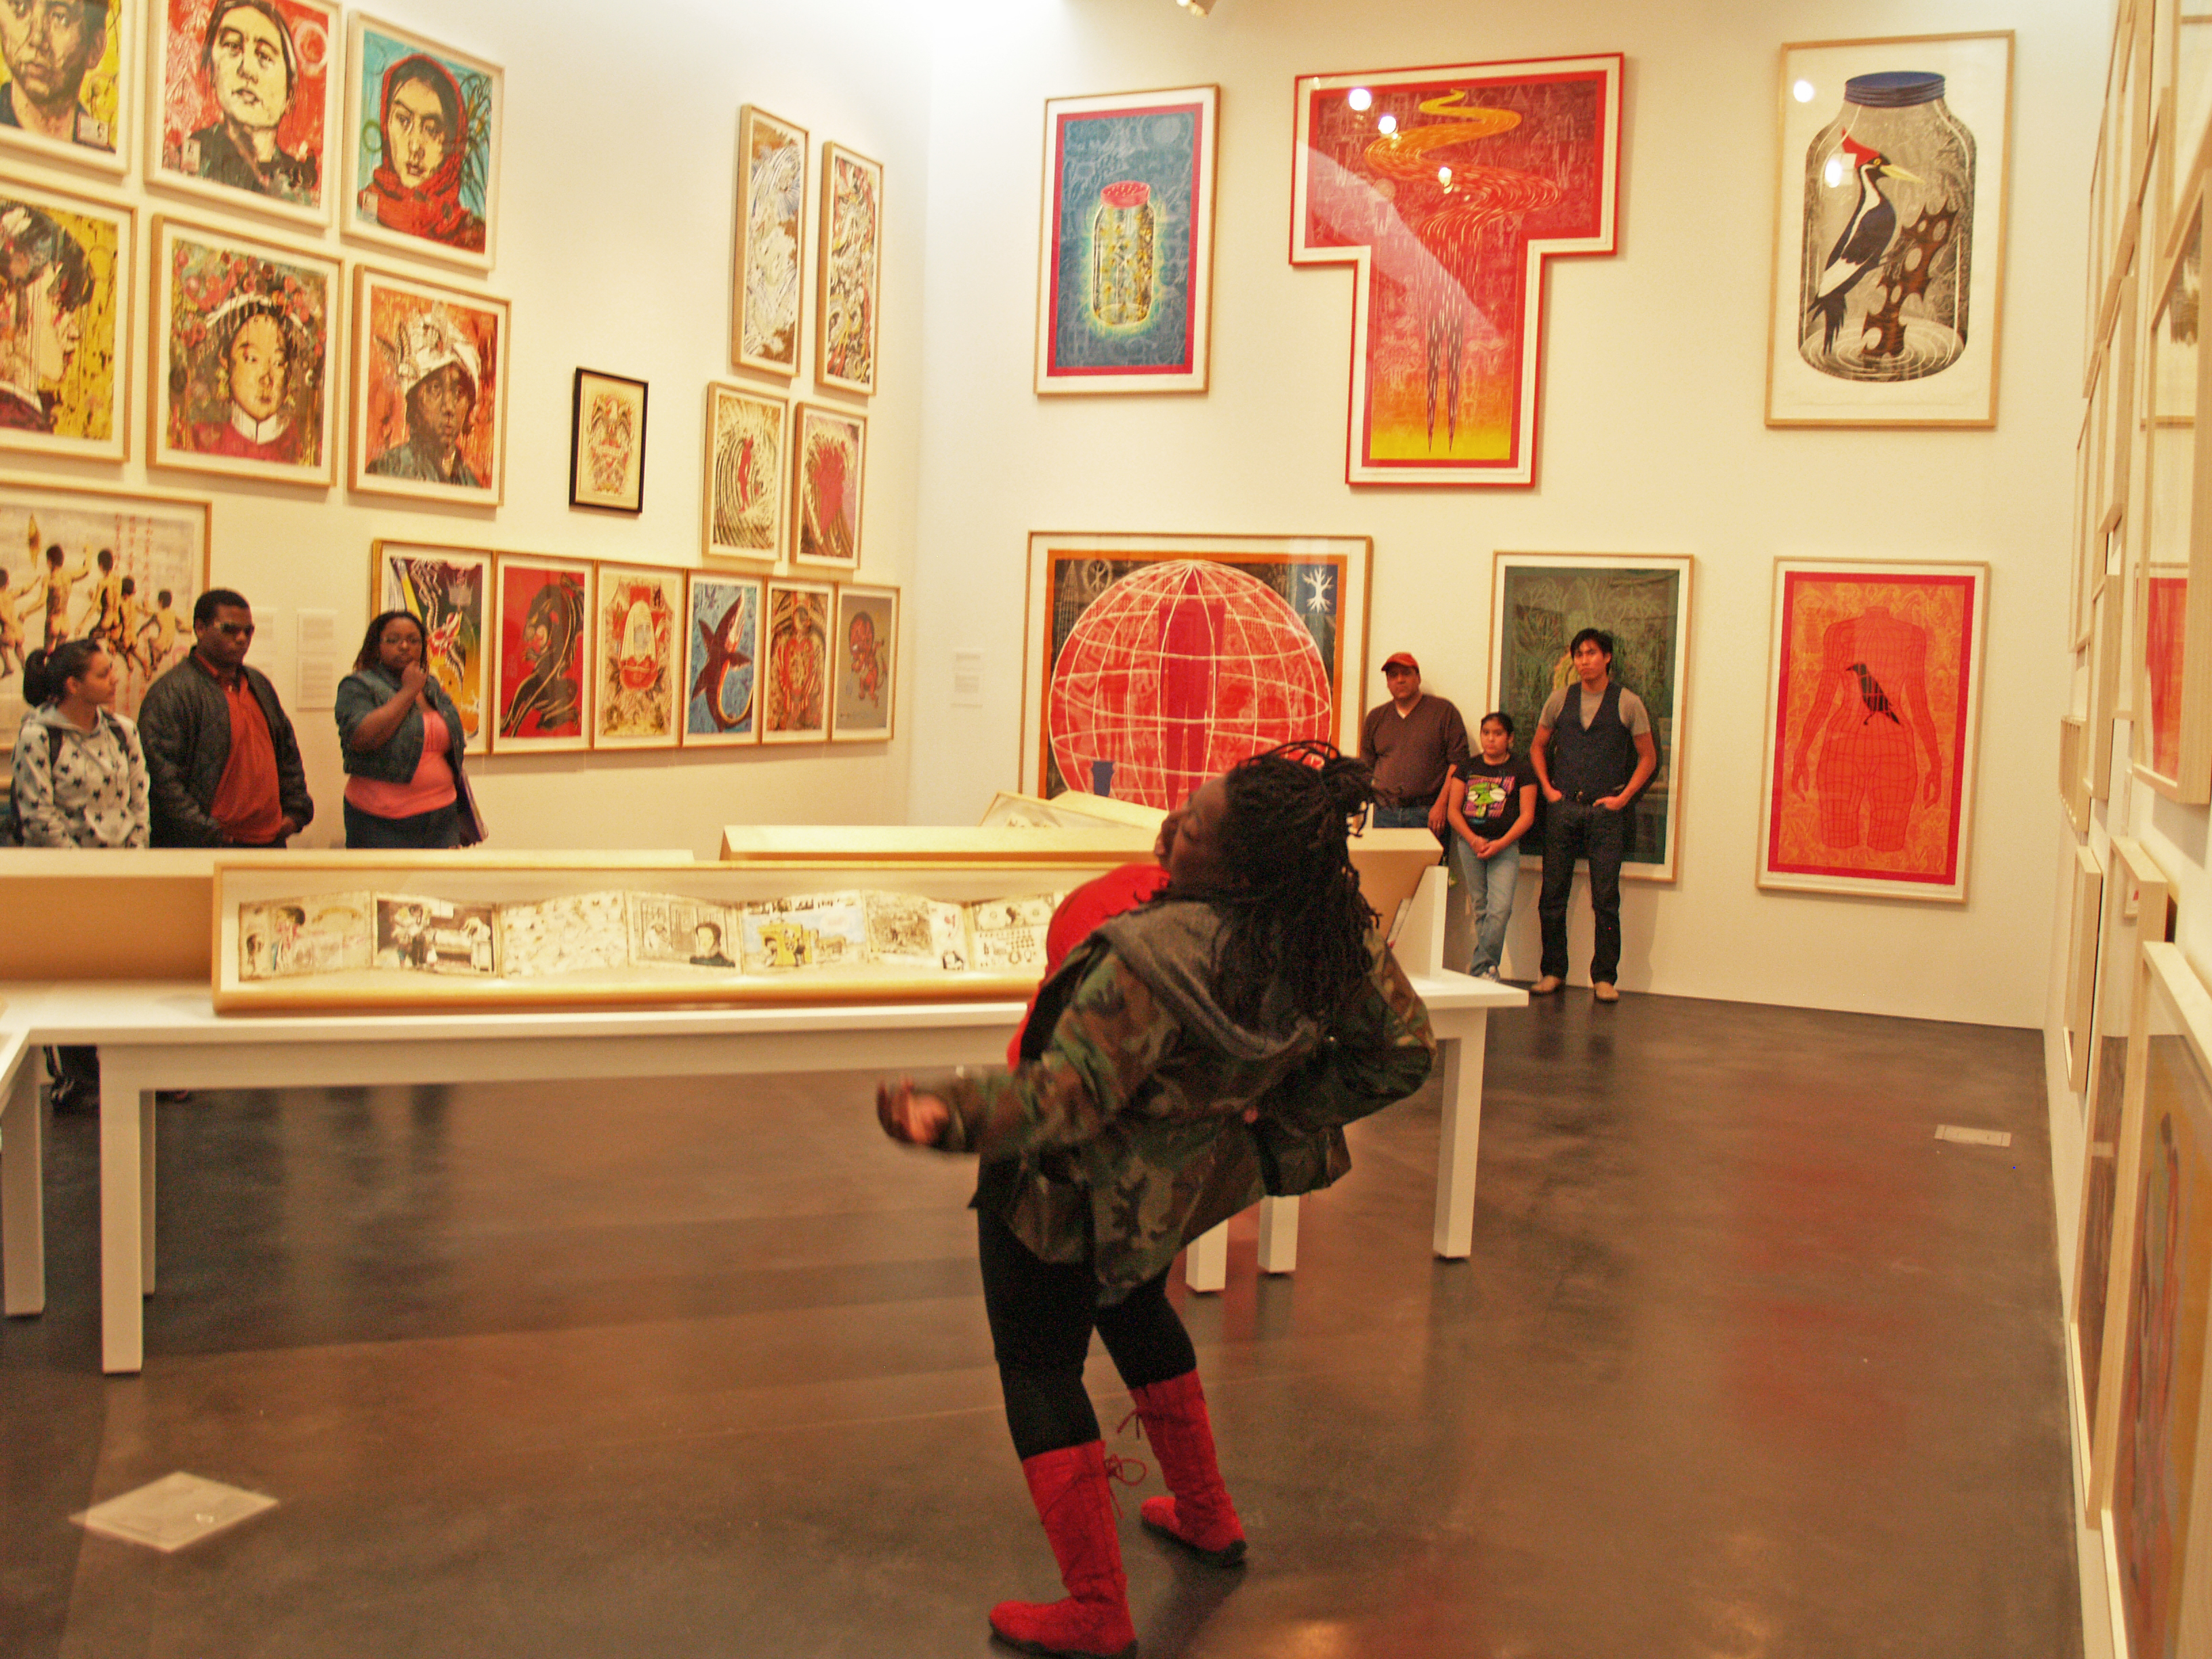 images?q=tbn:ANd9GcQh_l3eQ5xwiPy07kGEXjmjgmBKBRB7H2mRxCGhv1tFWg5c_mWT Ideas For Contemporary Art Galleries Denver @koolgadgetz.com.info